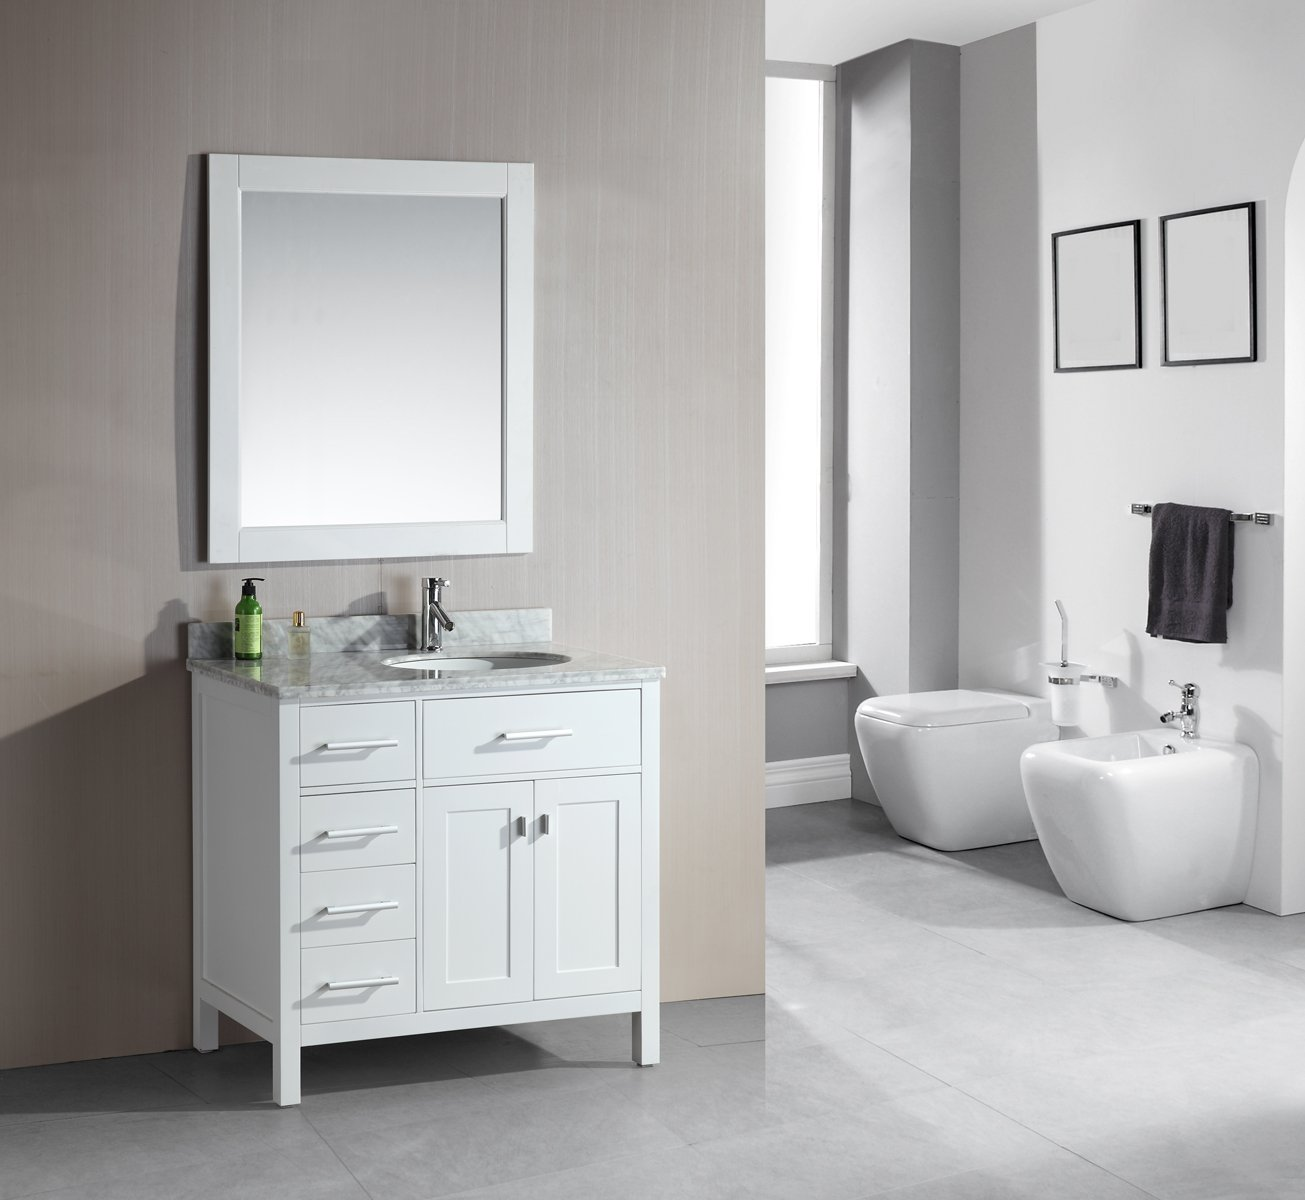 Attrayant Design Element DEC076D W L London 36 Inch Single Sink Vanity Set With  Drawers On The Left, White Finish   Sink Cabinet   Amazon.com